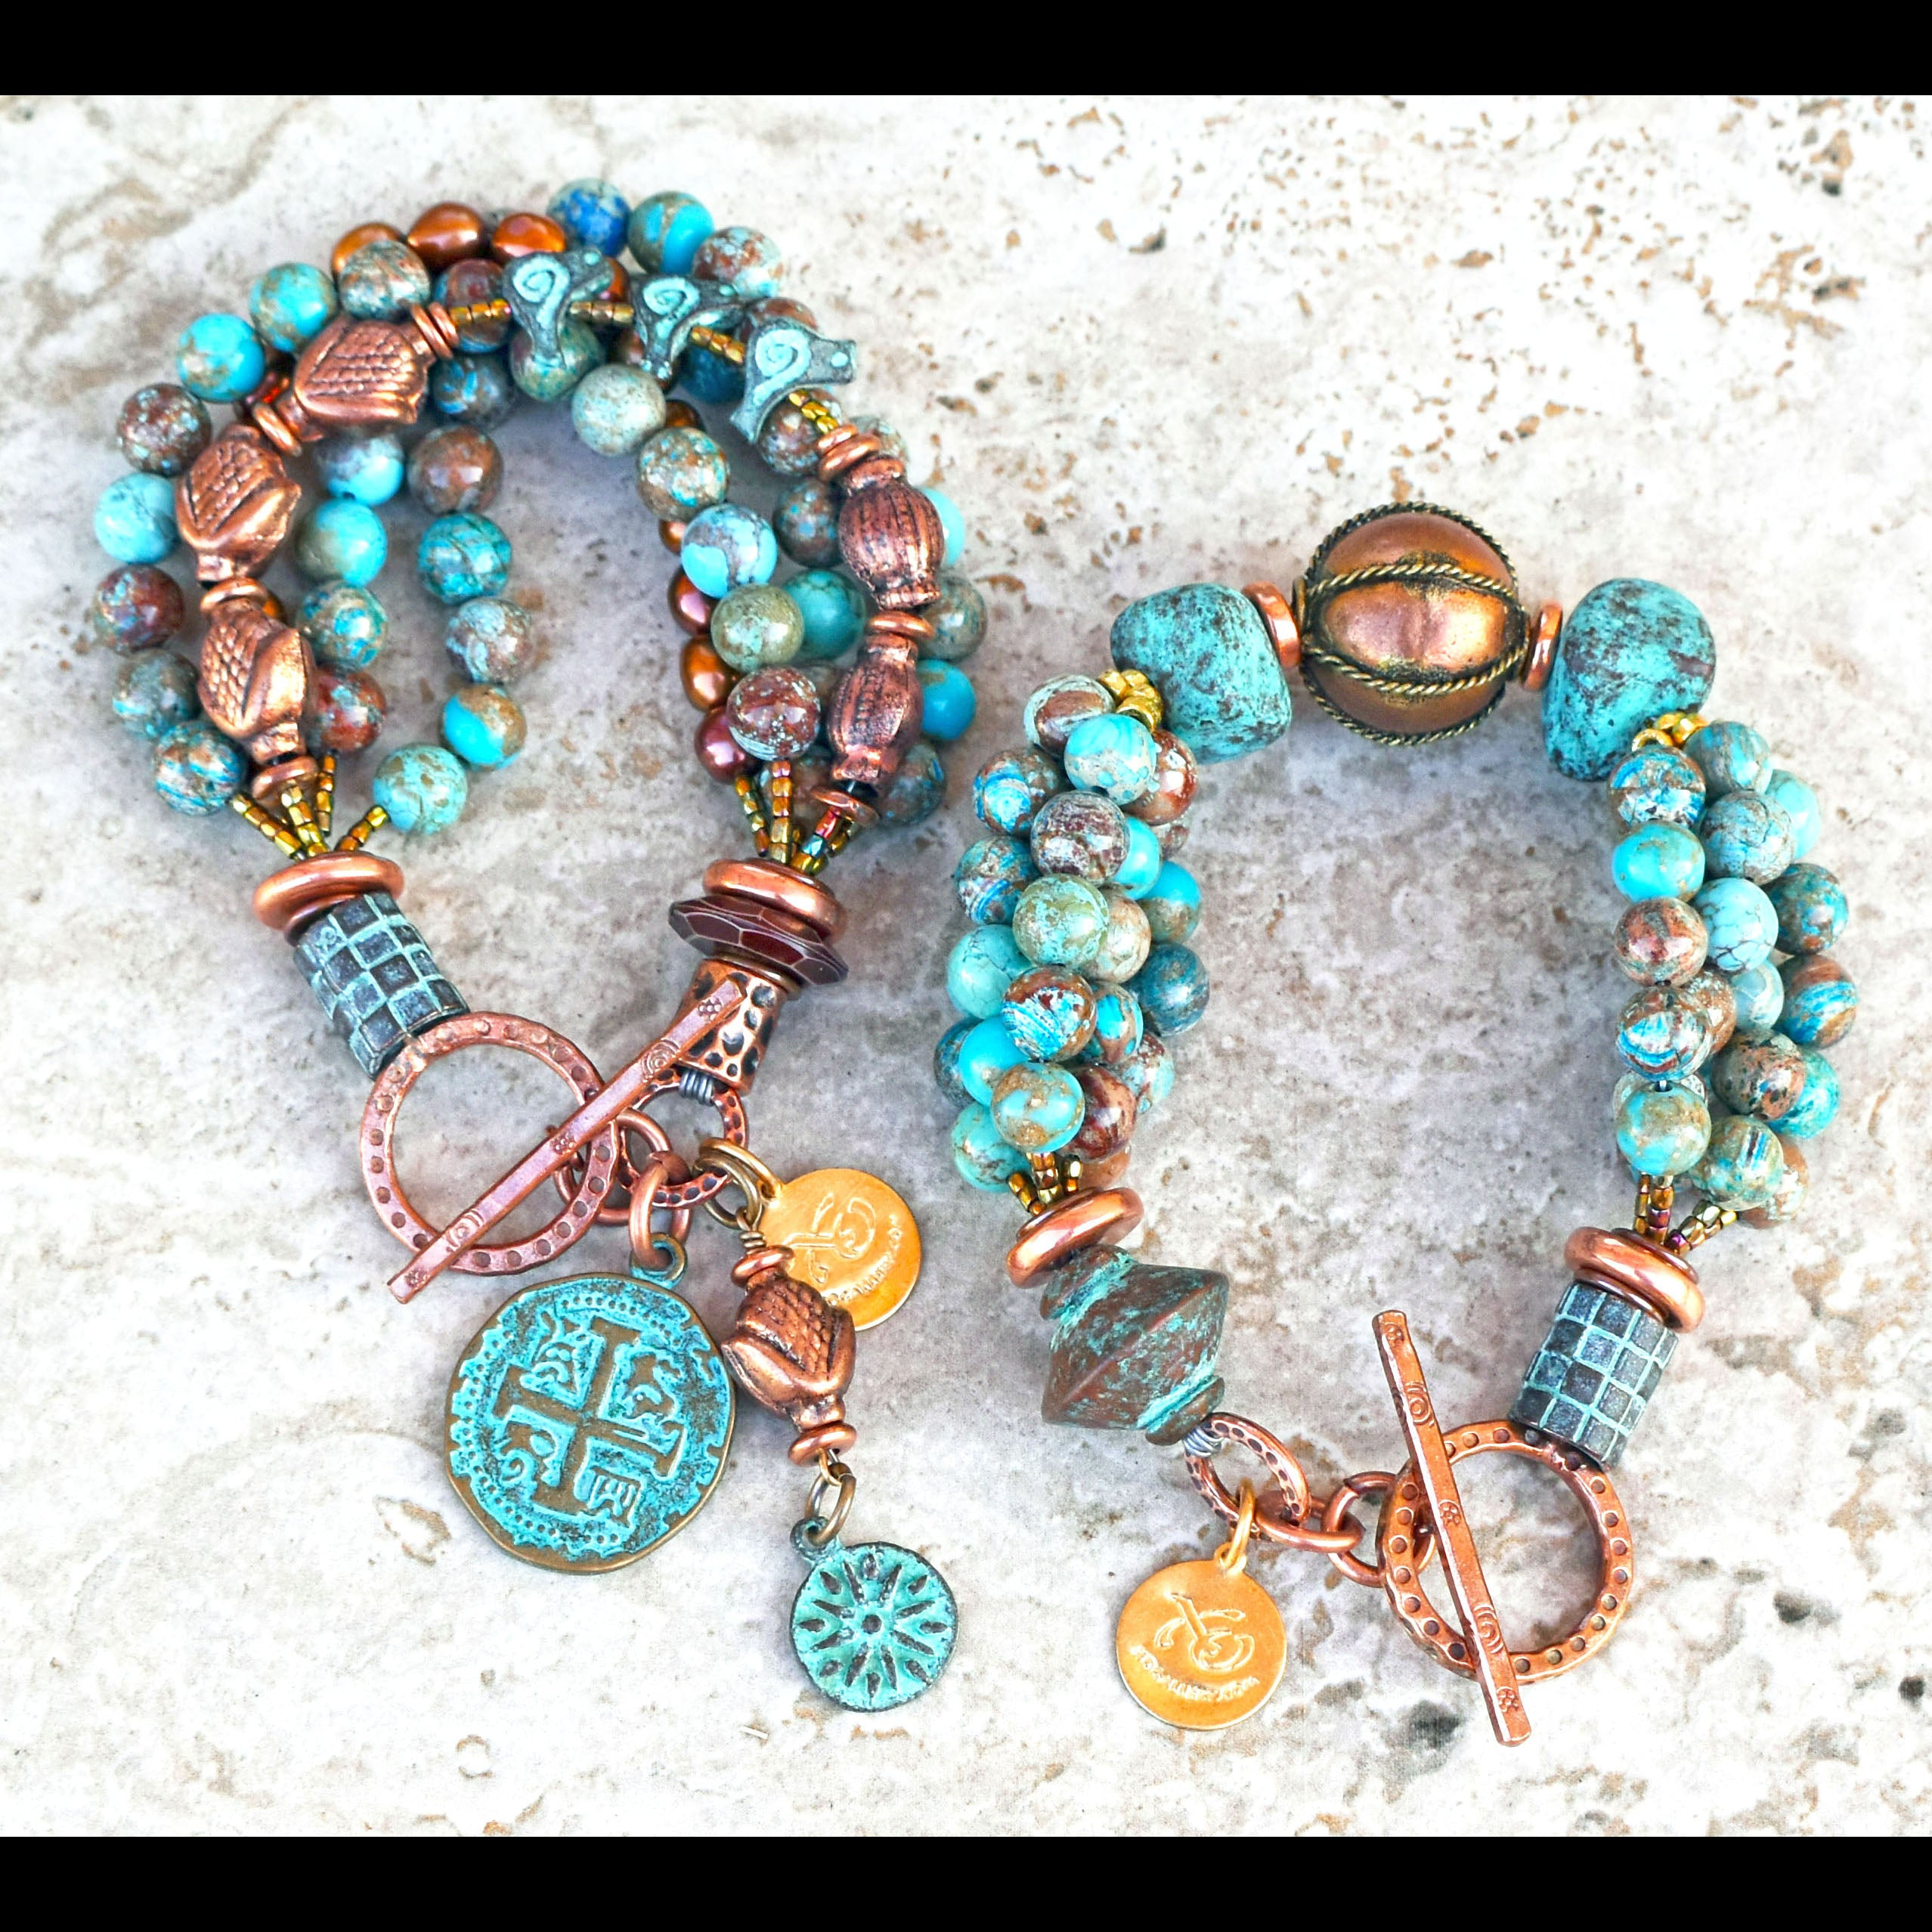 Beautiful Blue and Brown Jasper, Verdigris Clay and Copper Bracelets